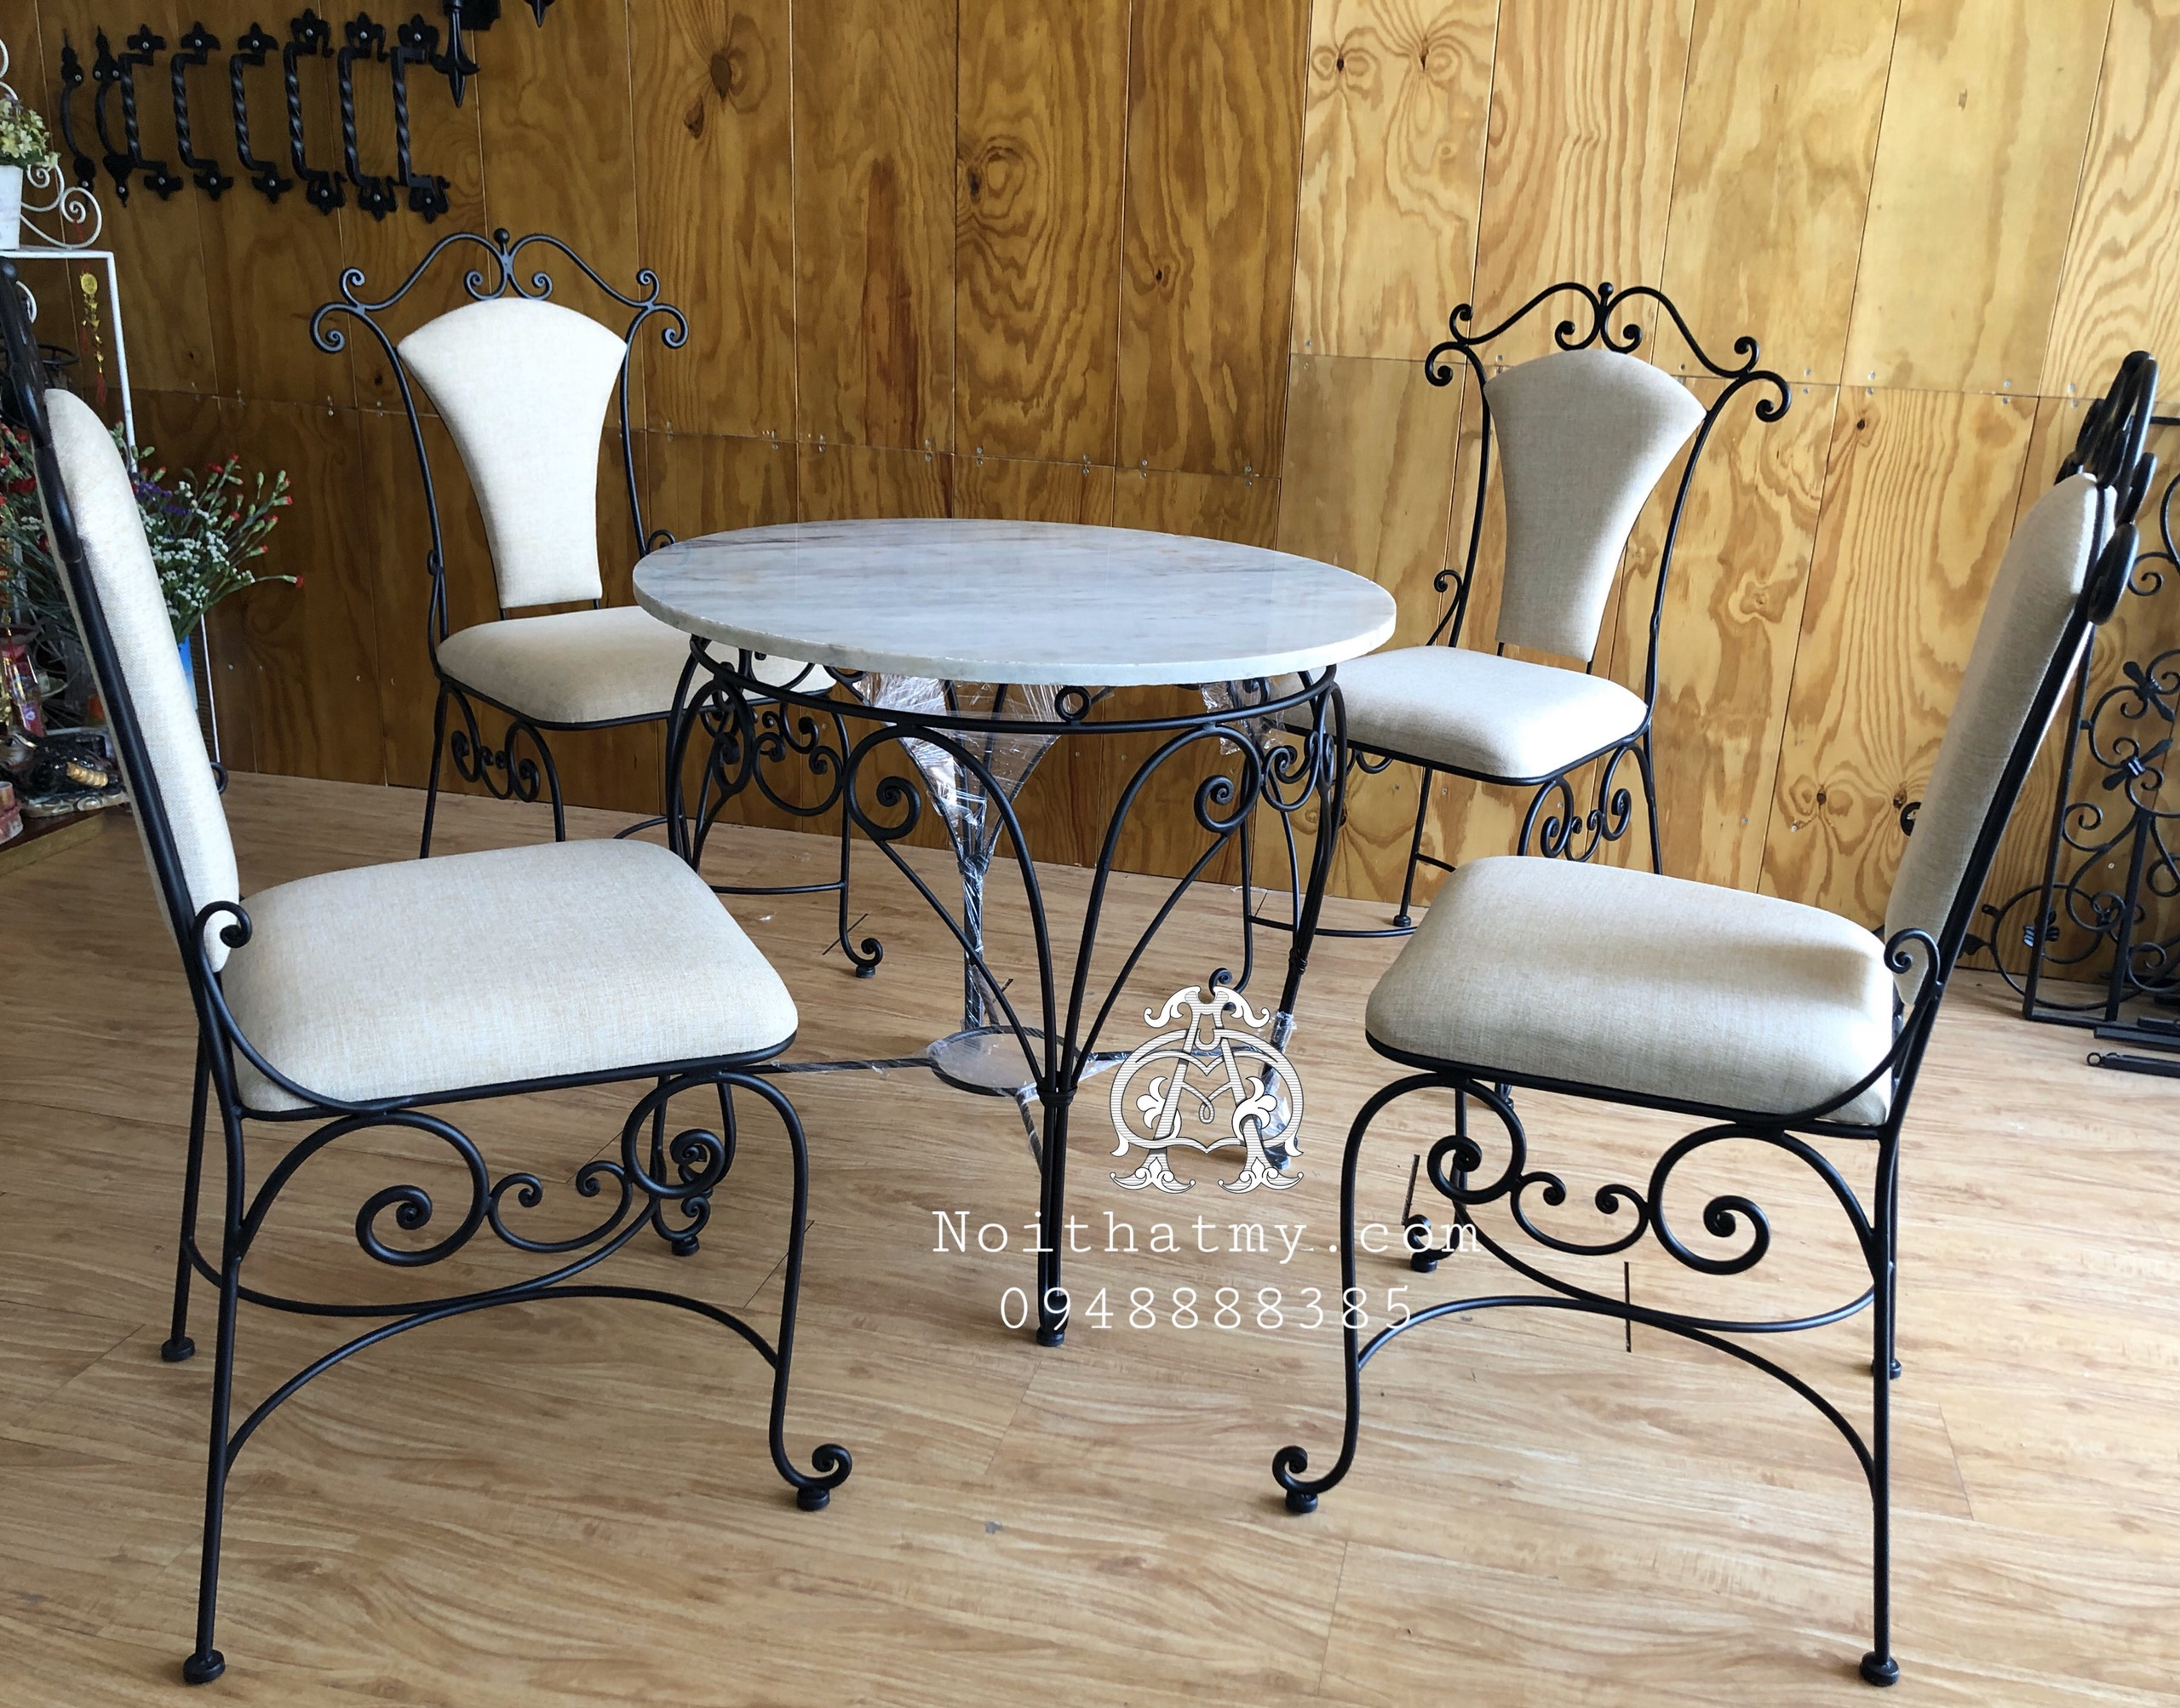 Luxury tables and chairs for the New Year BG20-020